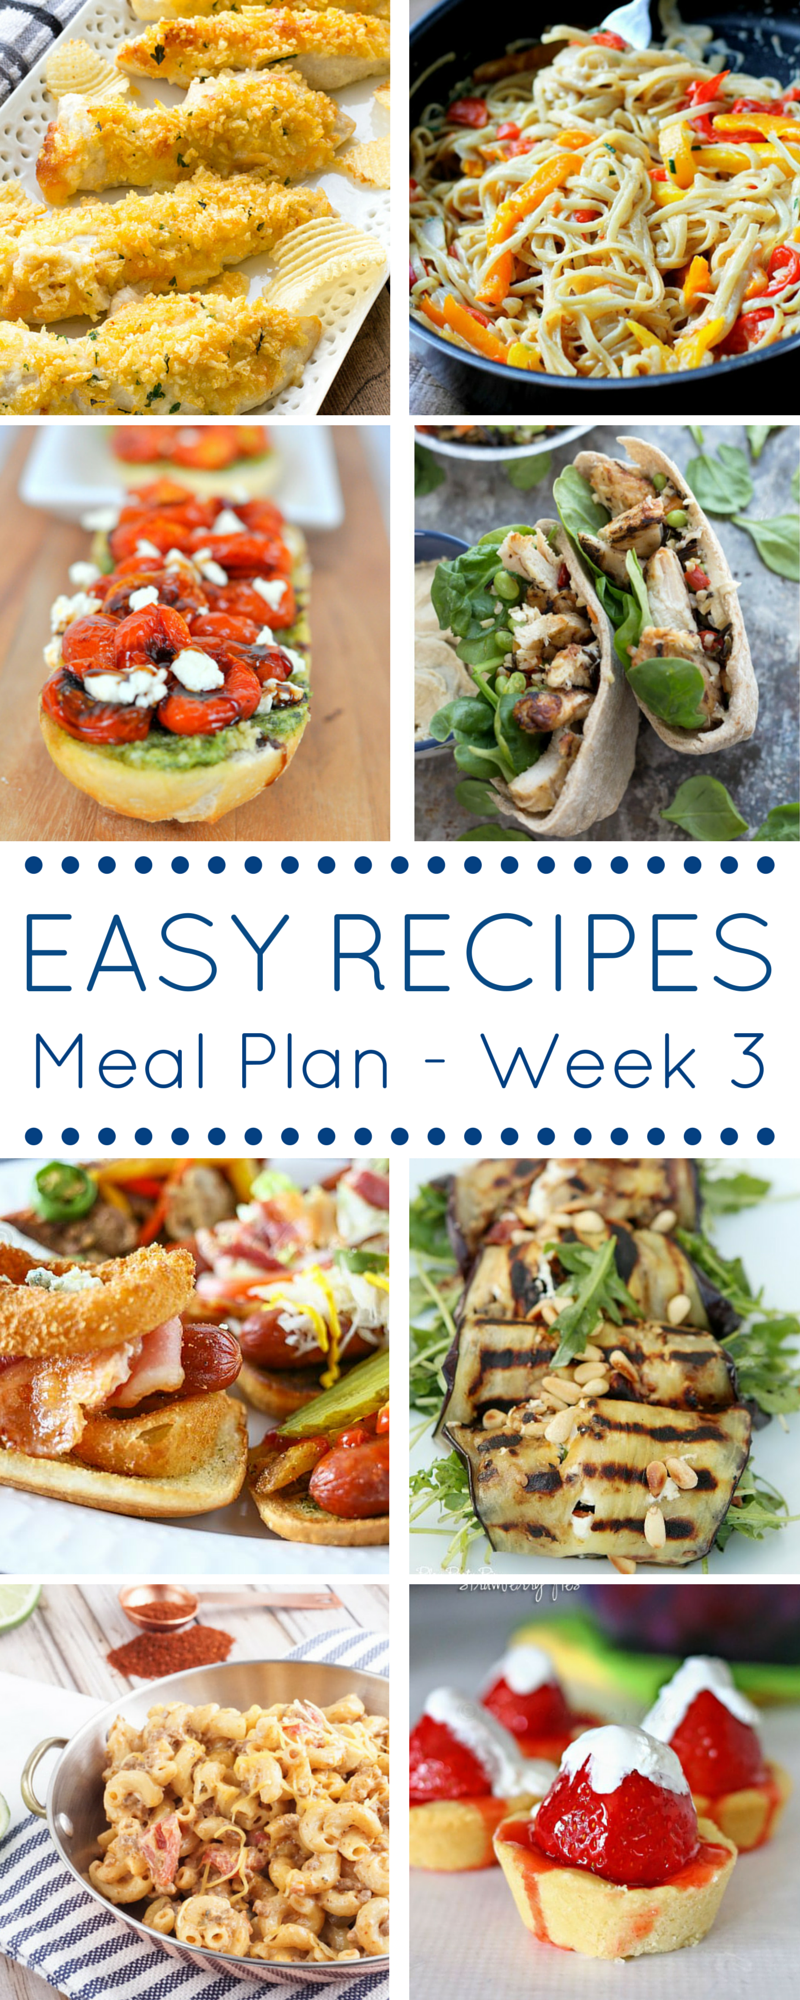 Easy Recipes Meal Plan - Week 3